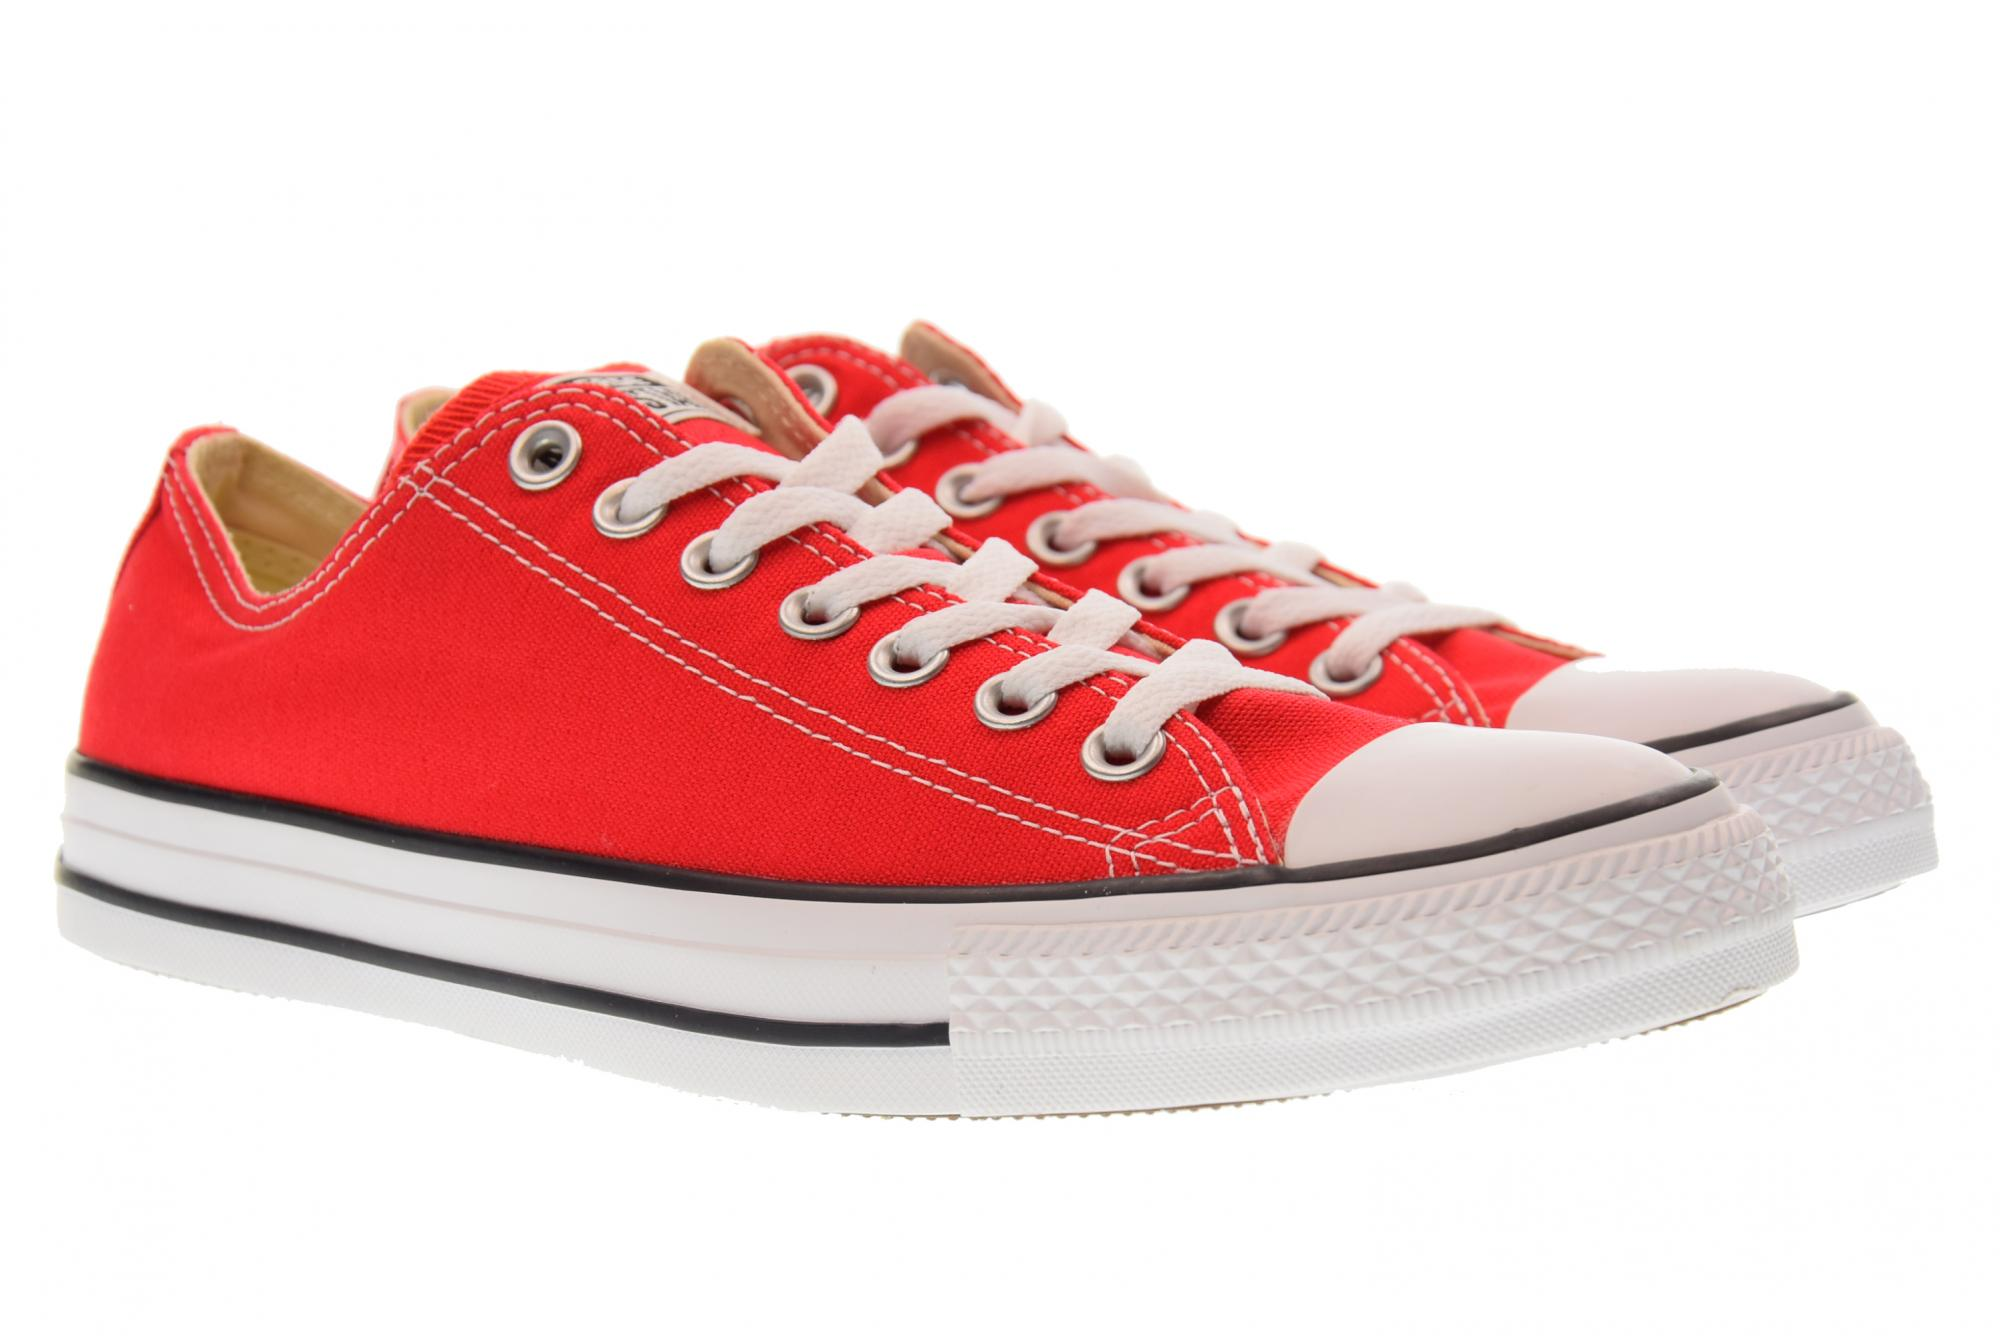 Sneakers   Converse   Rouge   ALL STAR OX M9696C   Livraison